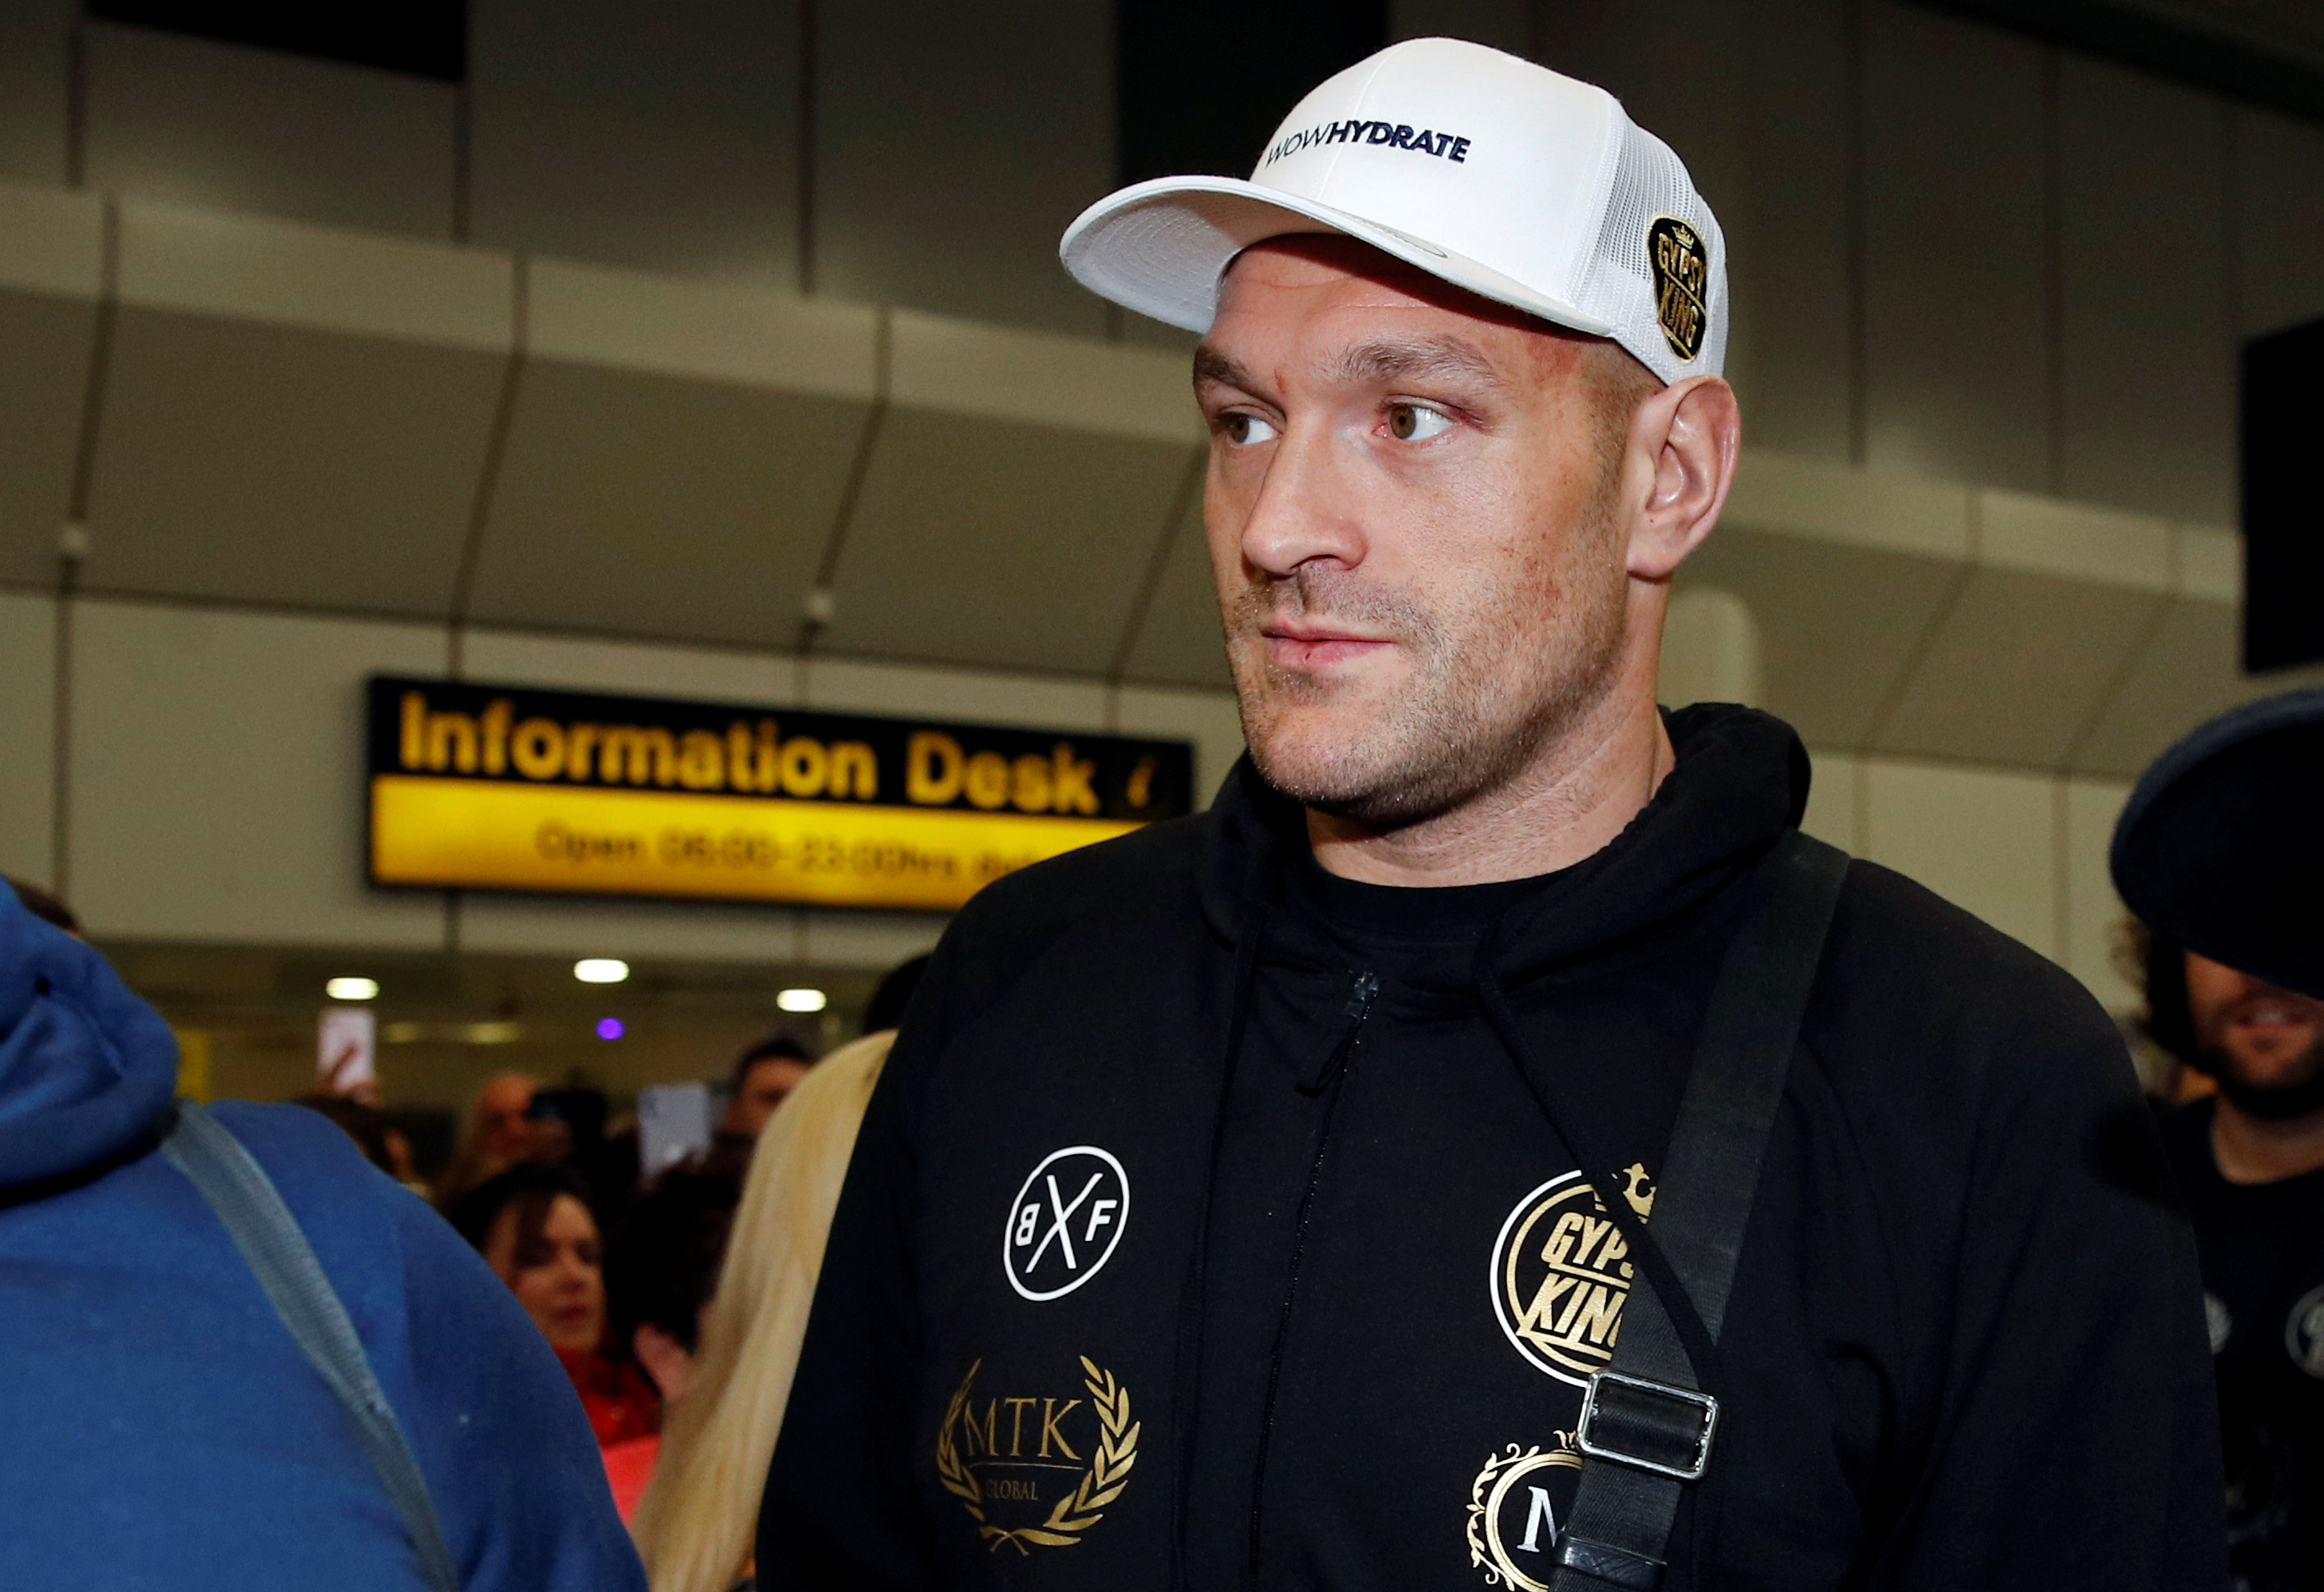 WBC Heavyweight boxing champion Tyson Fury arrives at Manchester Airport, in Manchester, Britain February 25, 2020. REUTERS/Phil Noble